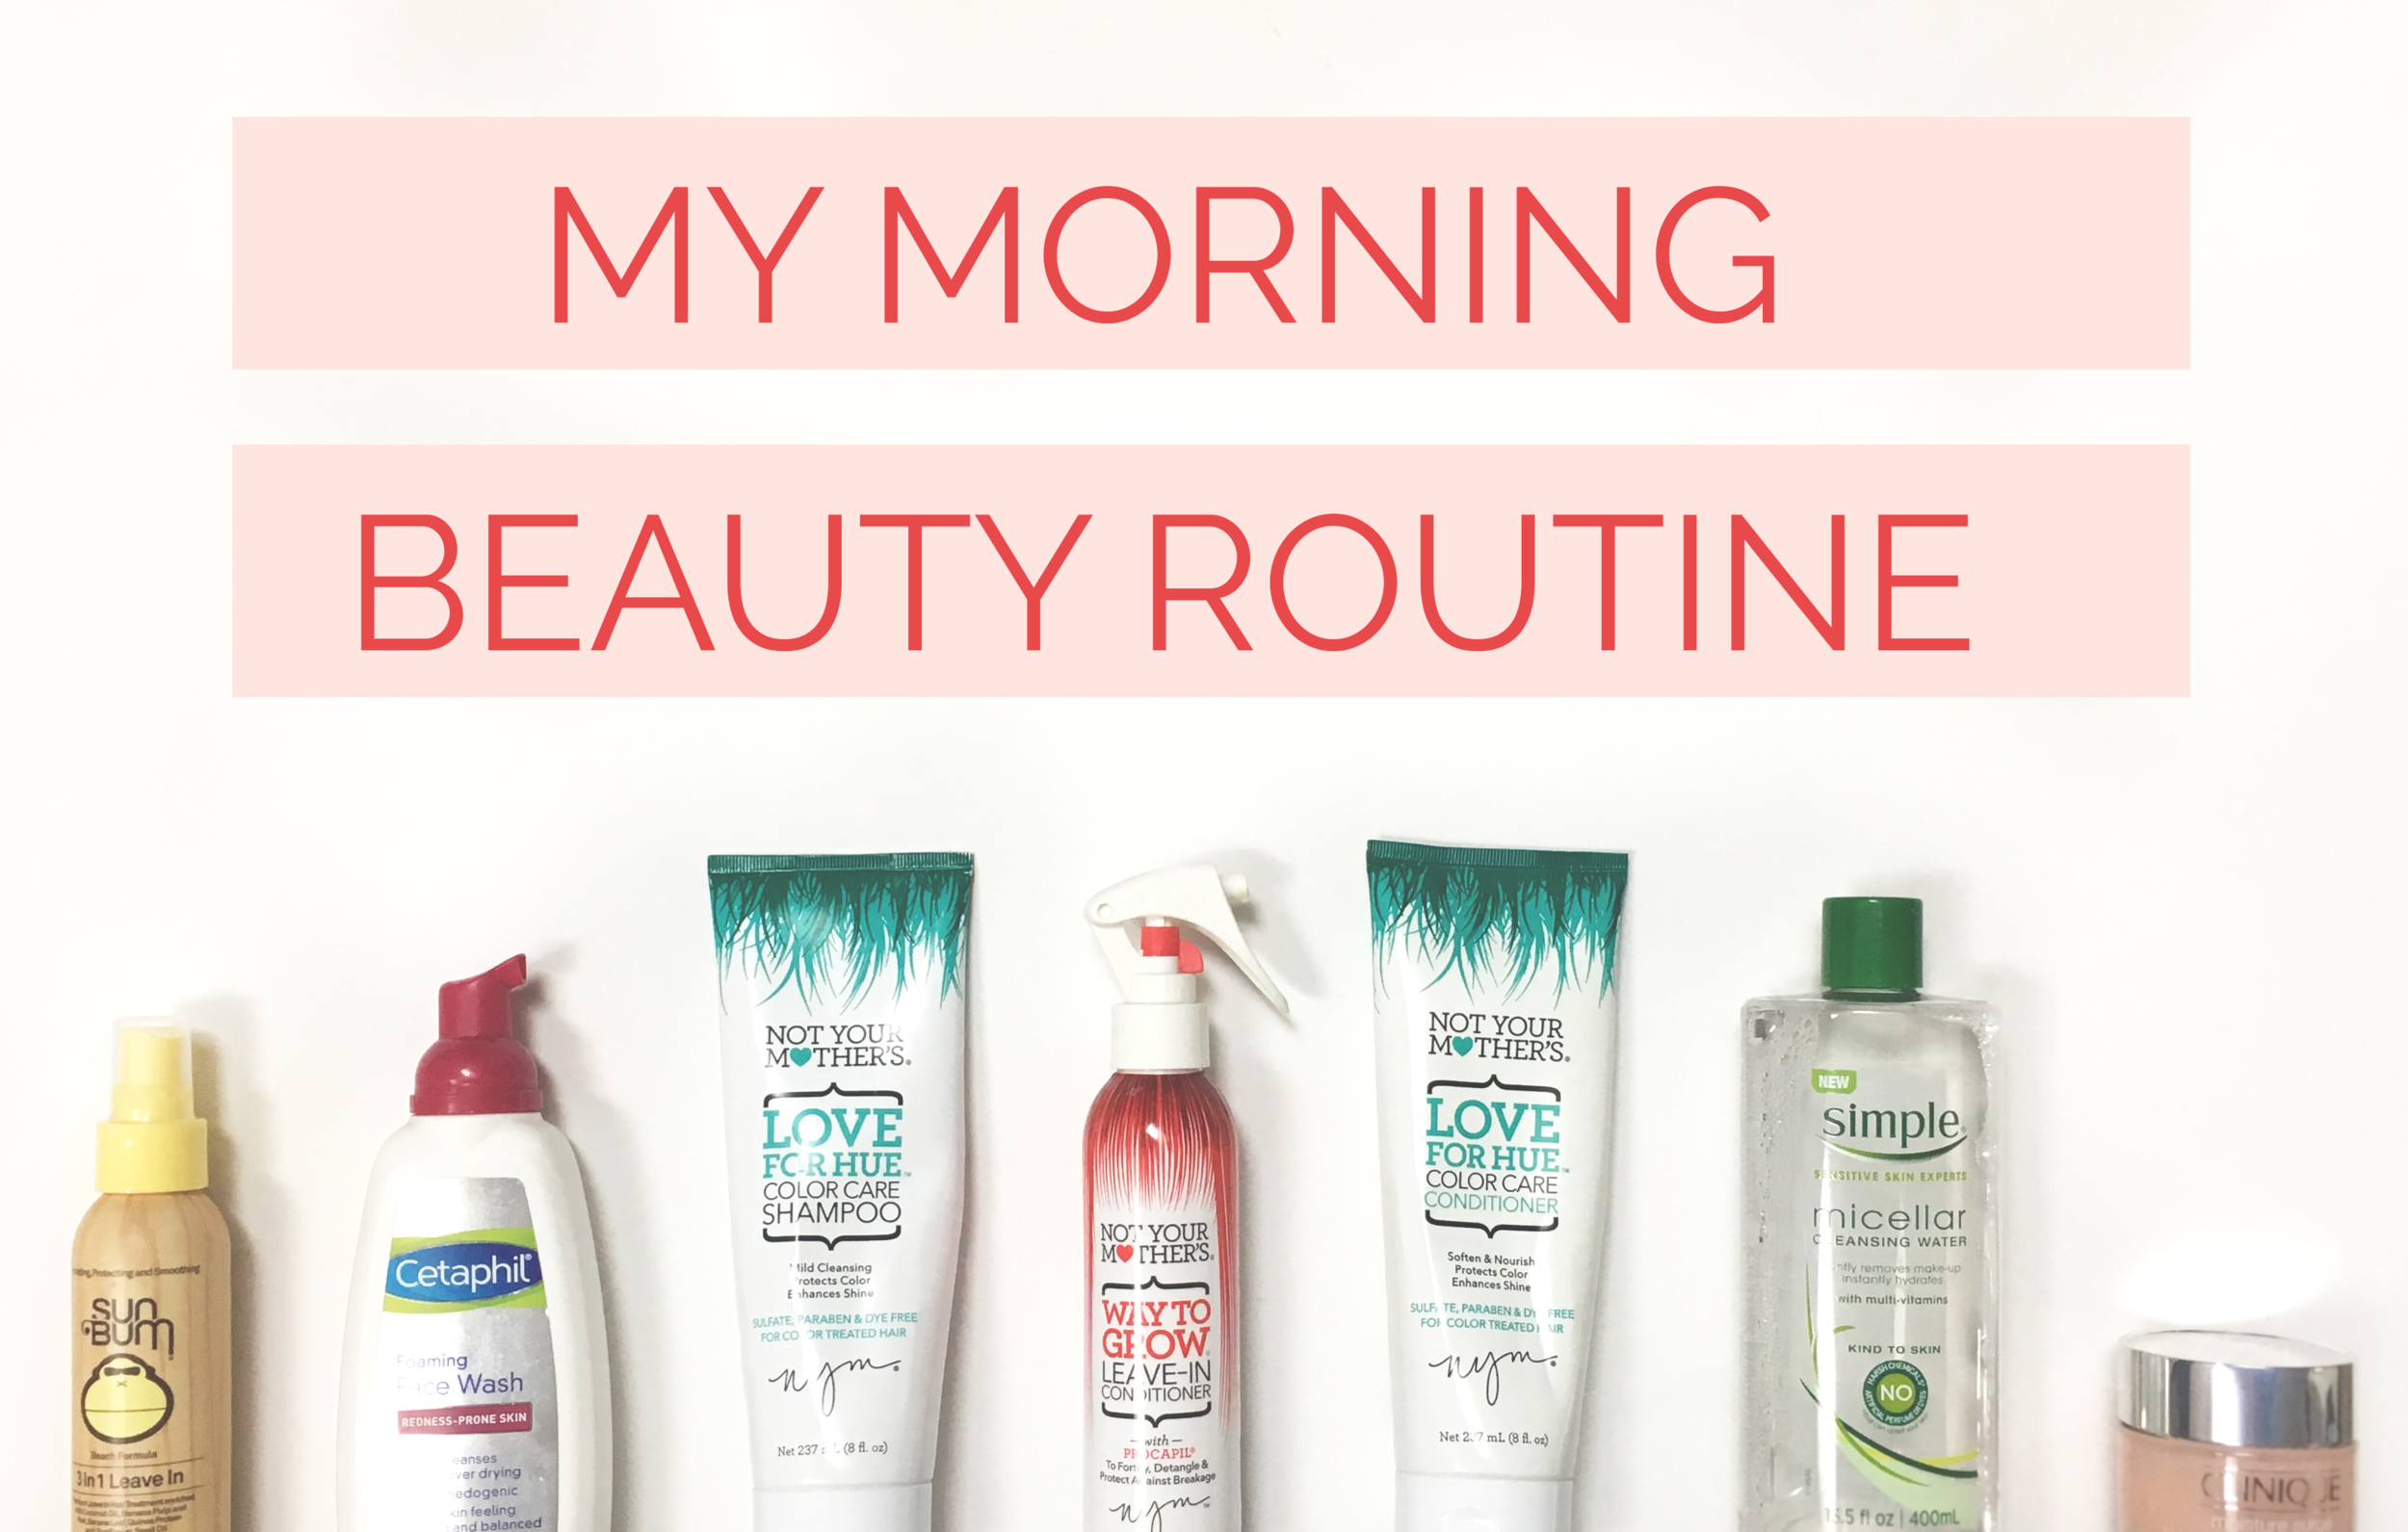 My Morning Beauty Routine Reghan Edwards Design